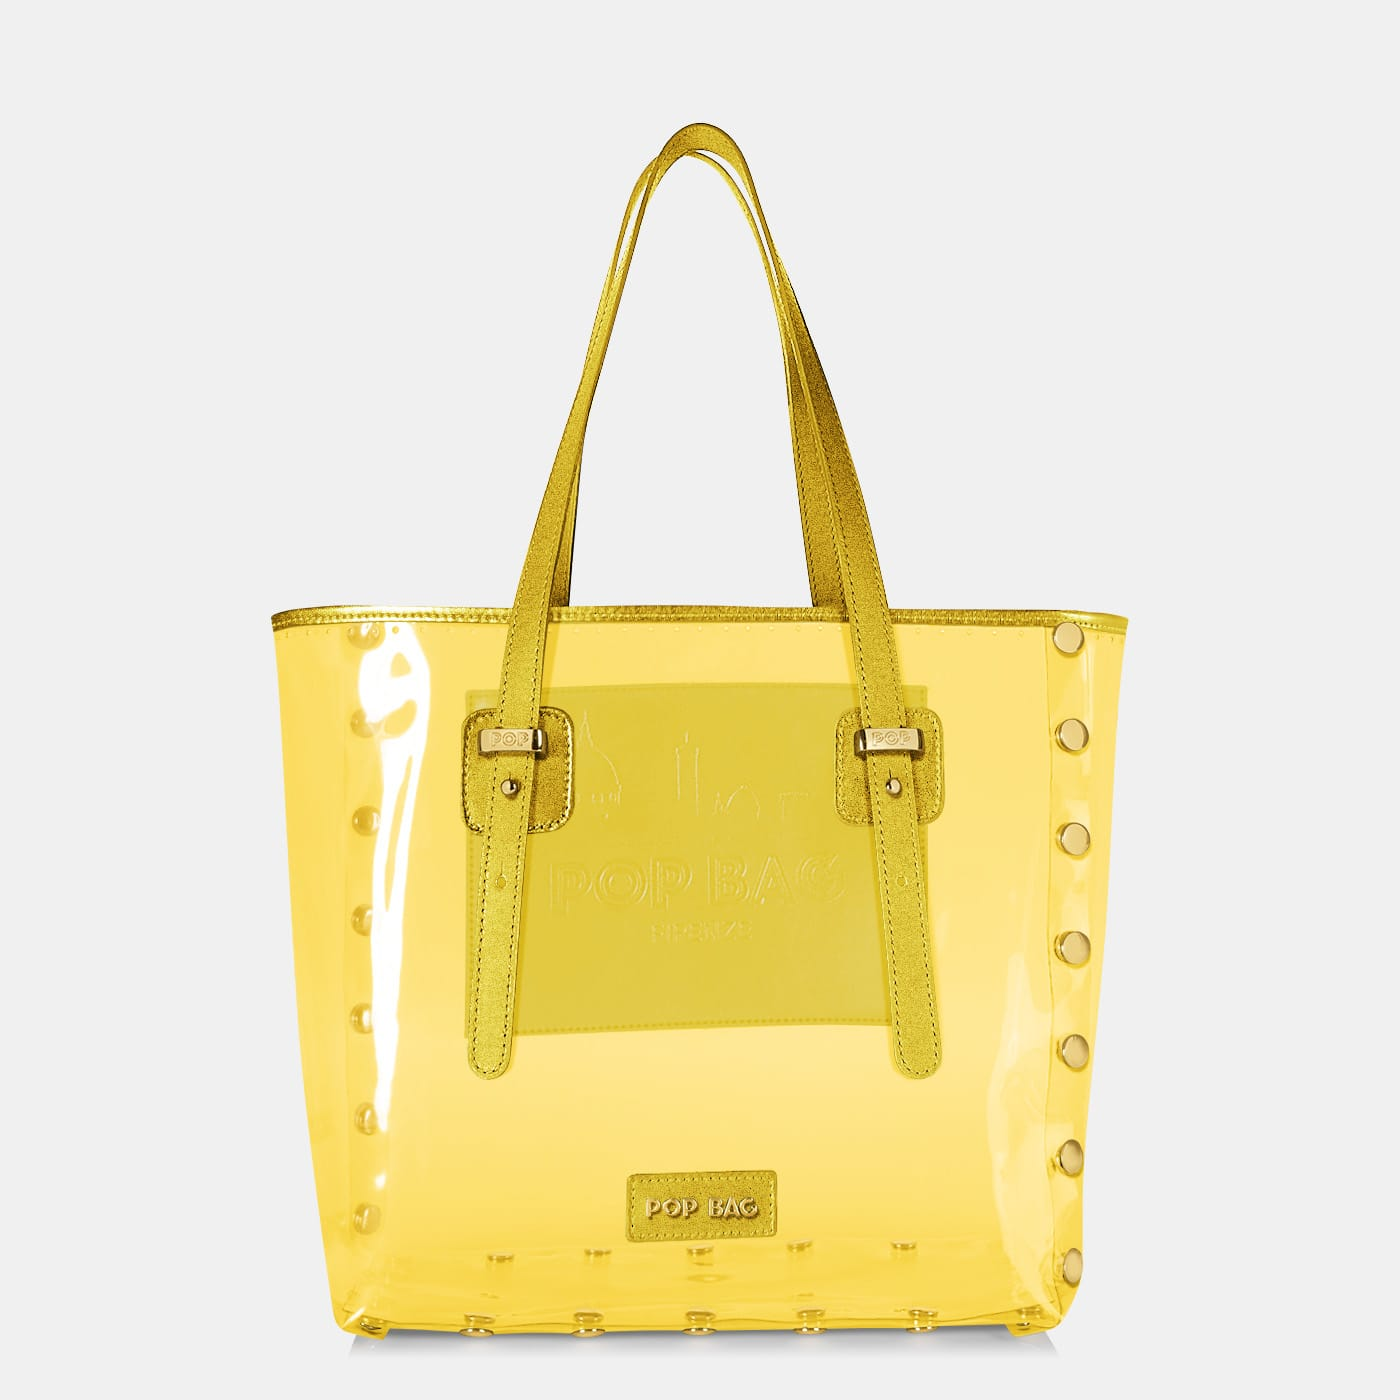 Pop Crystal Bag - Yellow - Large